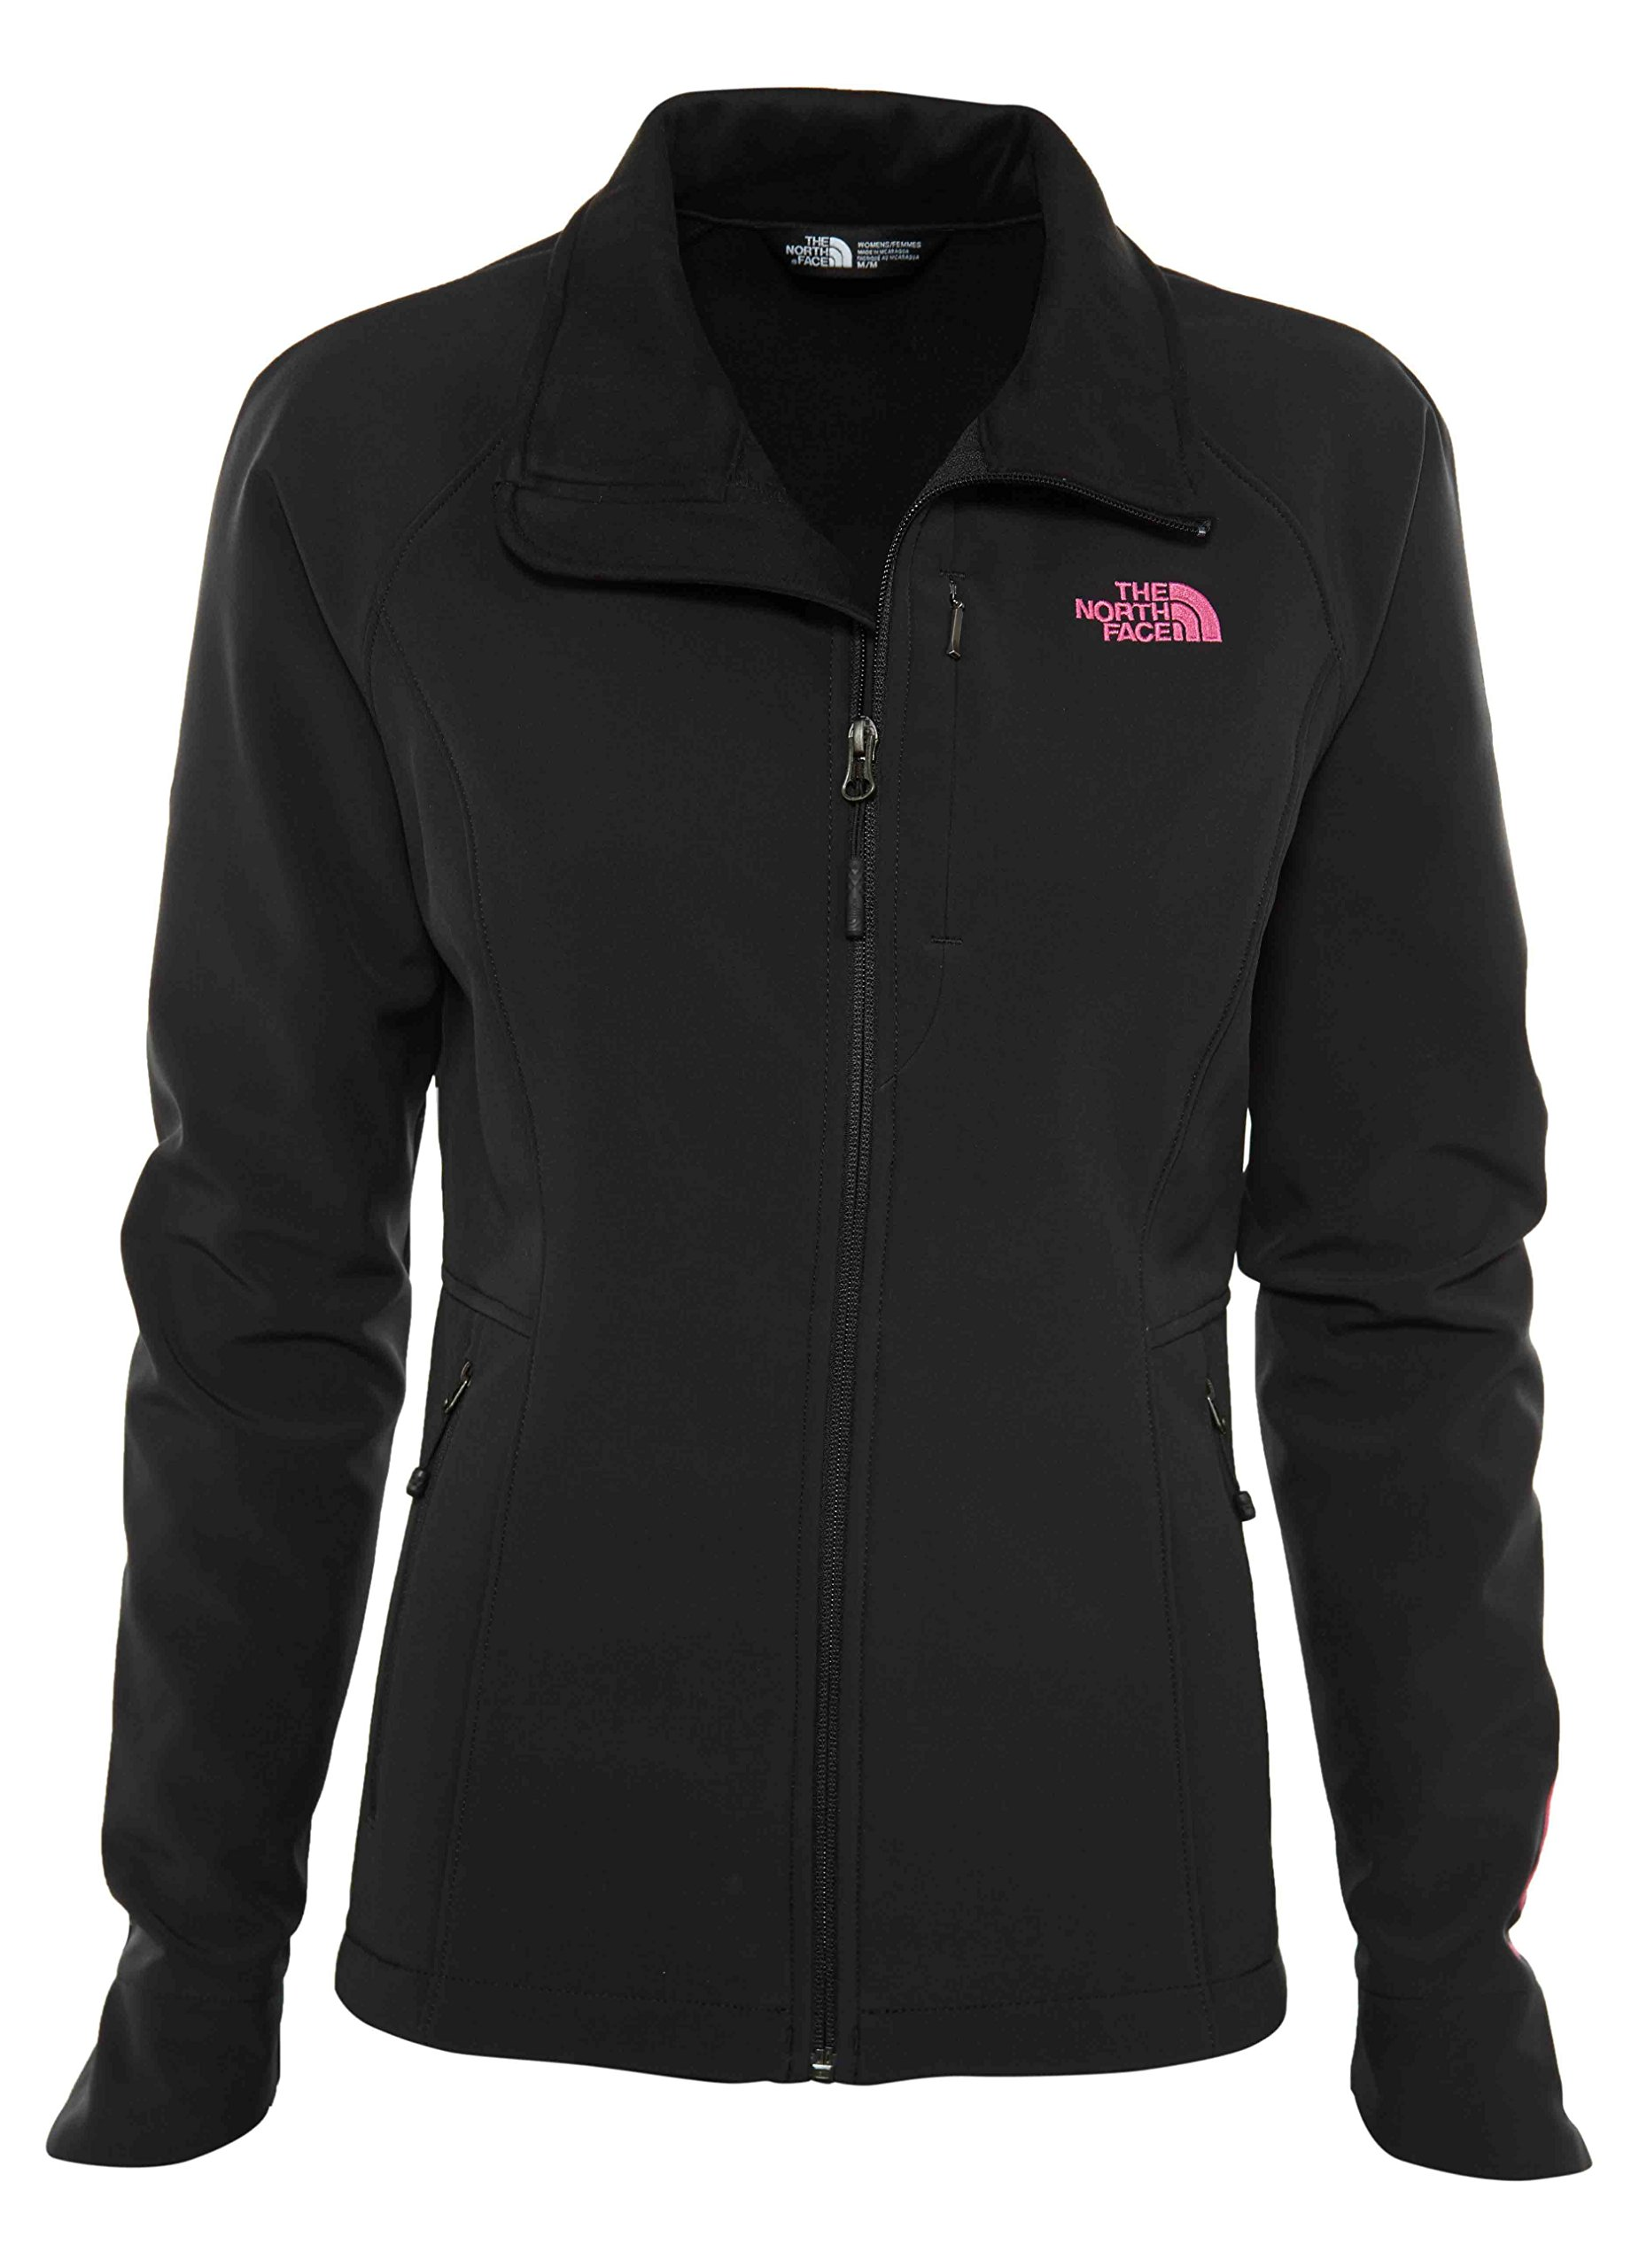 North Face Pink Ribbon Bionic Jacket Womens Style : A2sn3